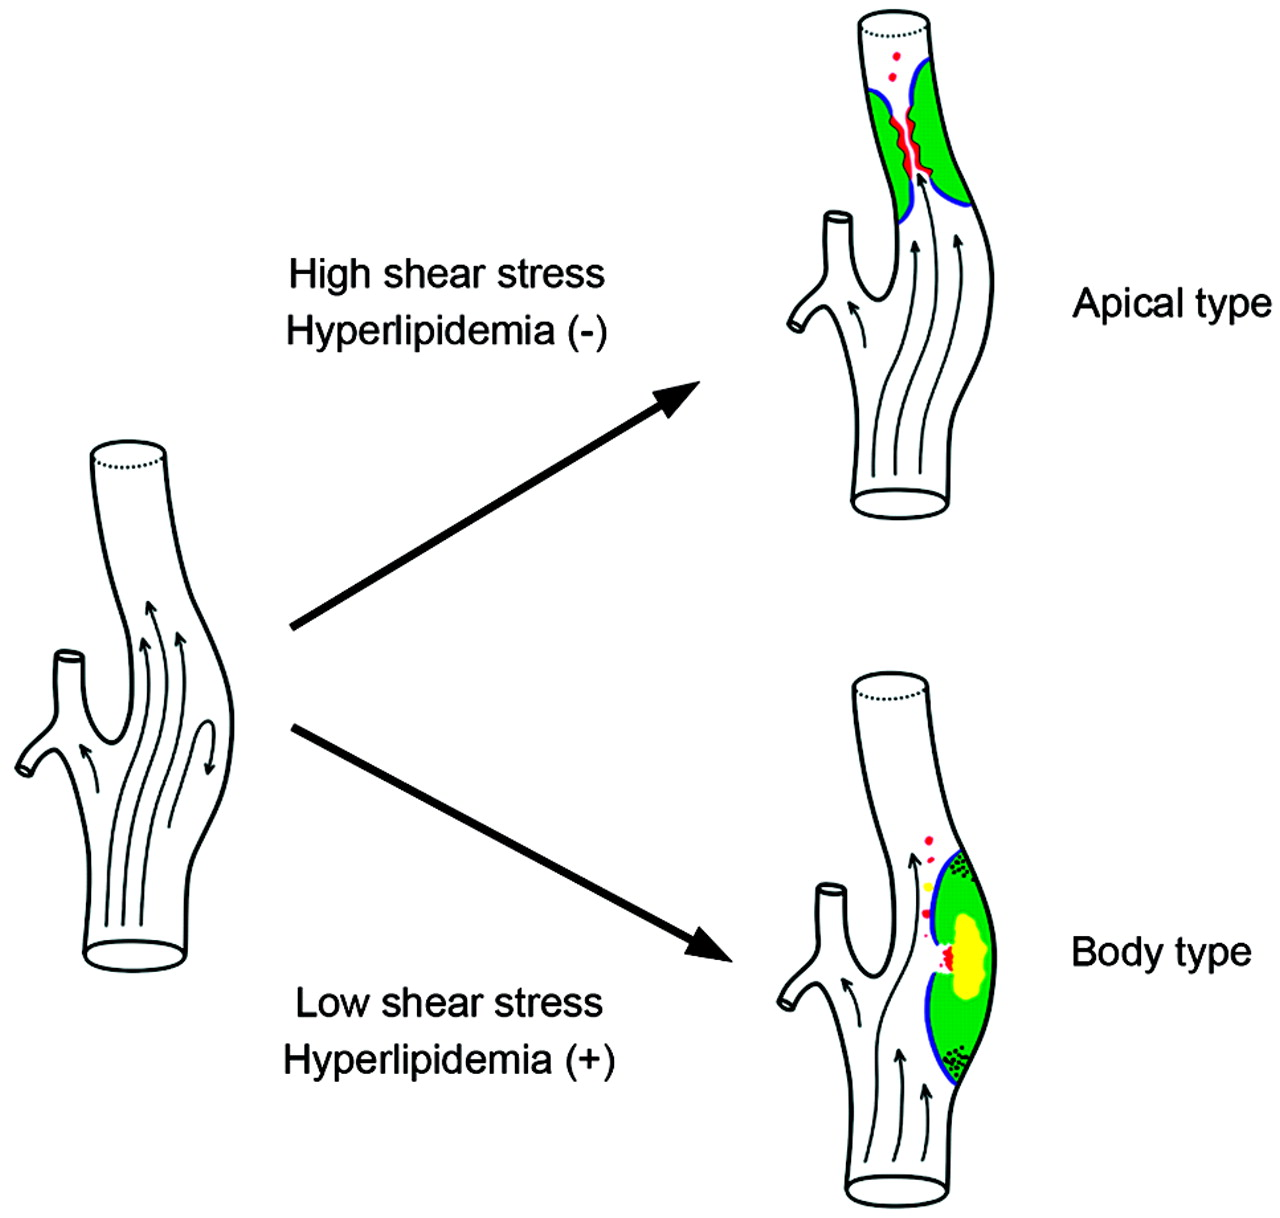 Atherosclerotic Carotid Stenoses Of Apical Versus Body